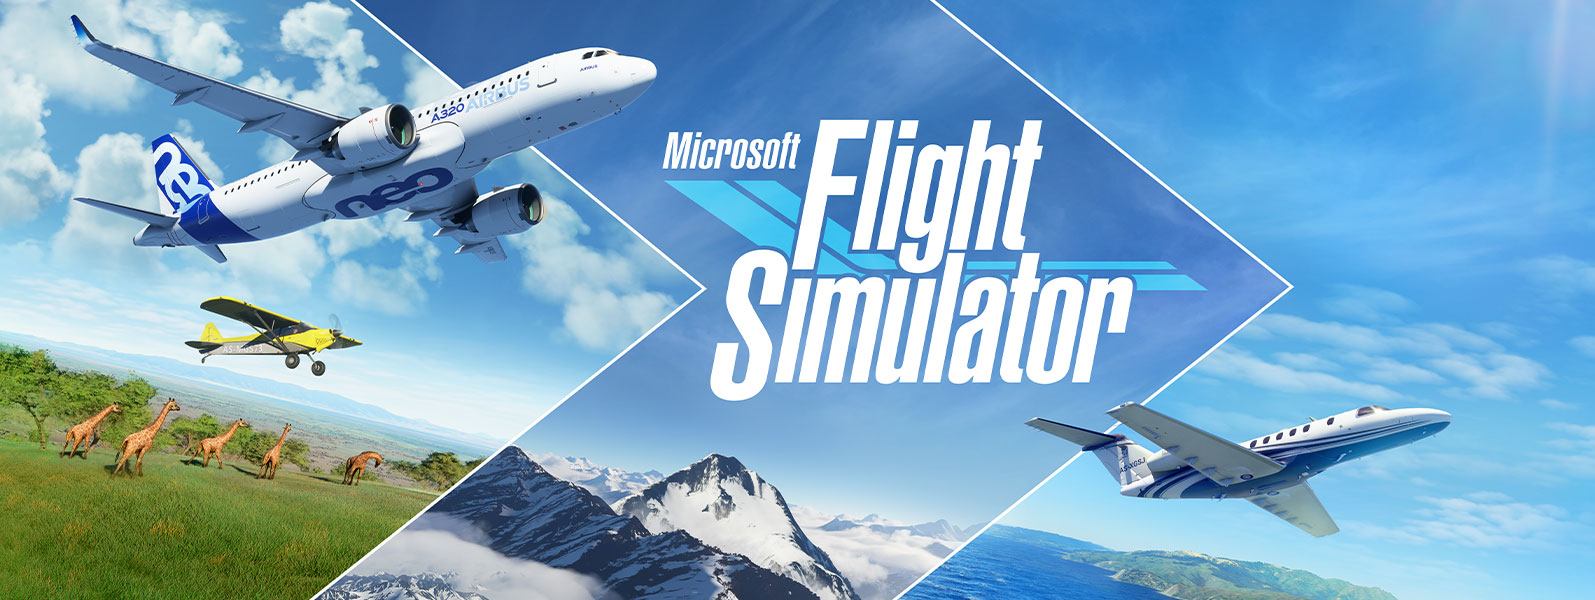 Microsoft Flight Simulator, planes and scenes from different parts of the world